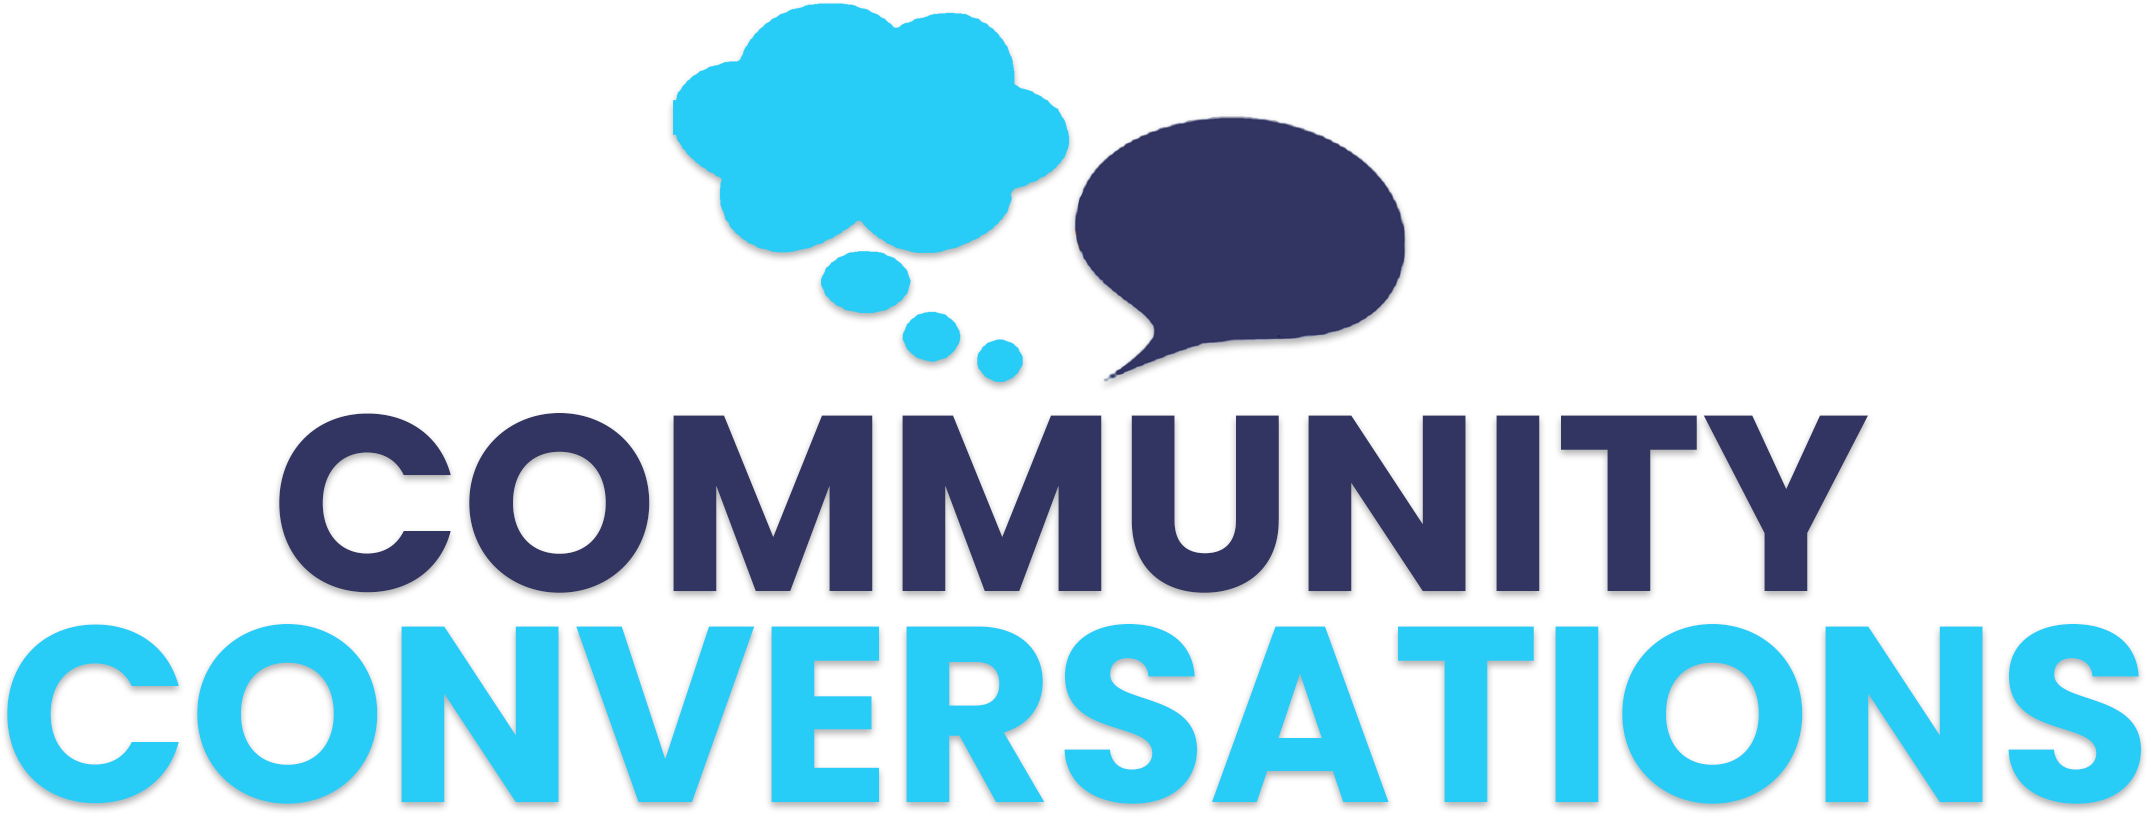 Community Conversations NI